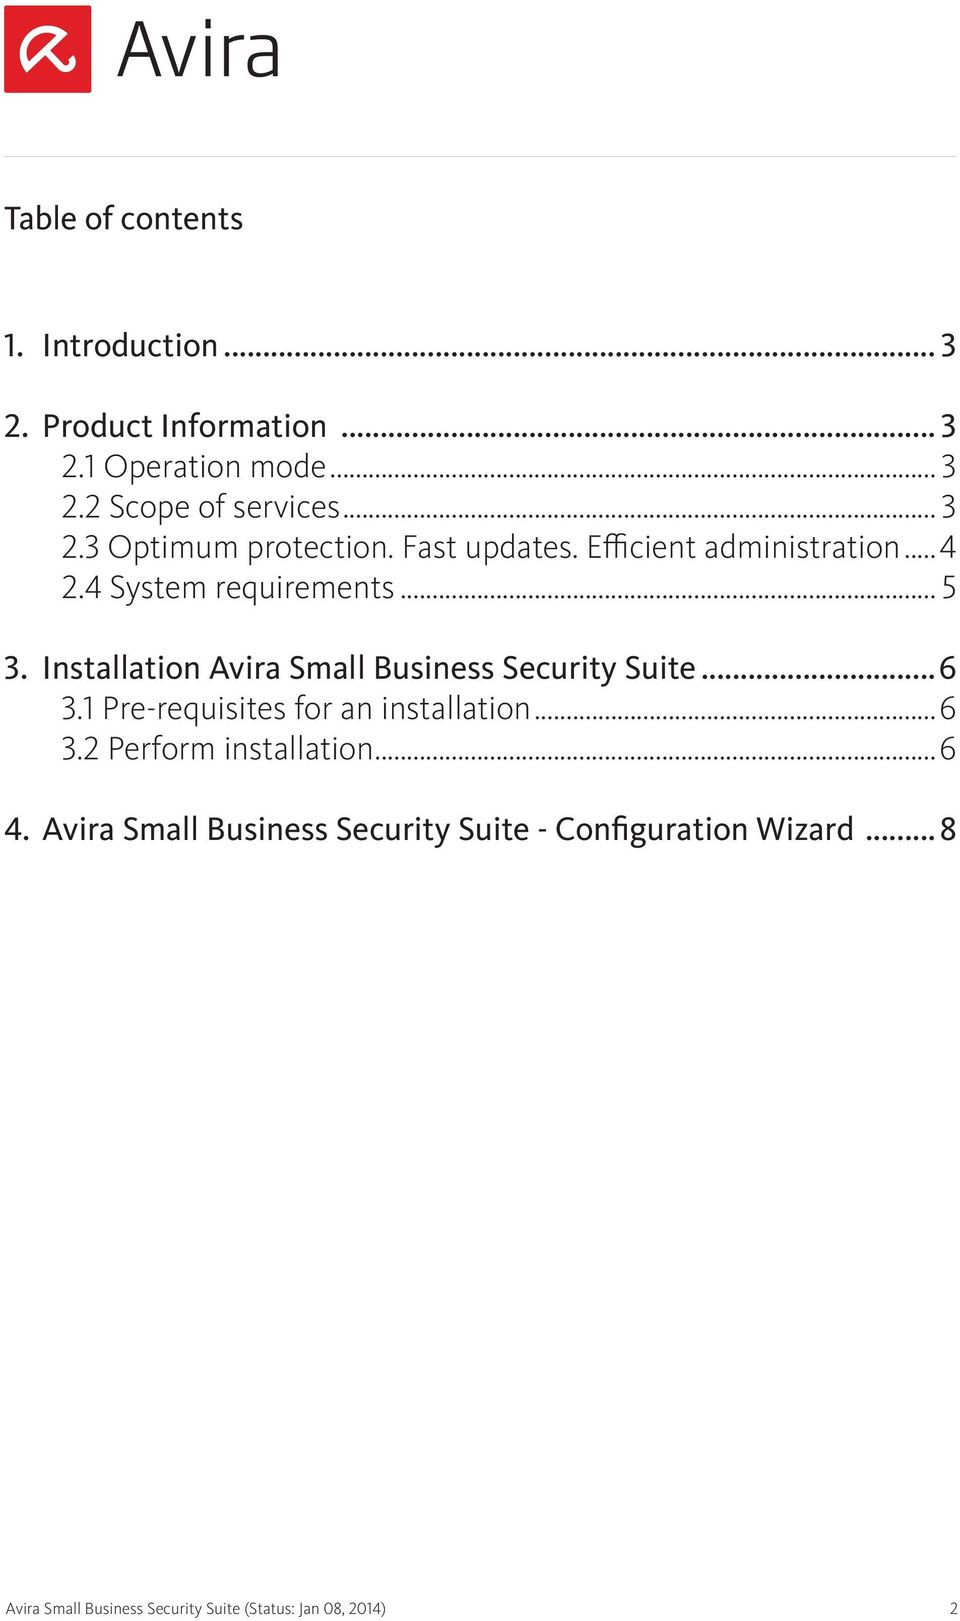 Installation Avira Small Business Security Suite...6 3.1 Pre-requisites for an installation...6 3.2 Perform installation.